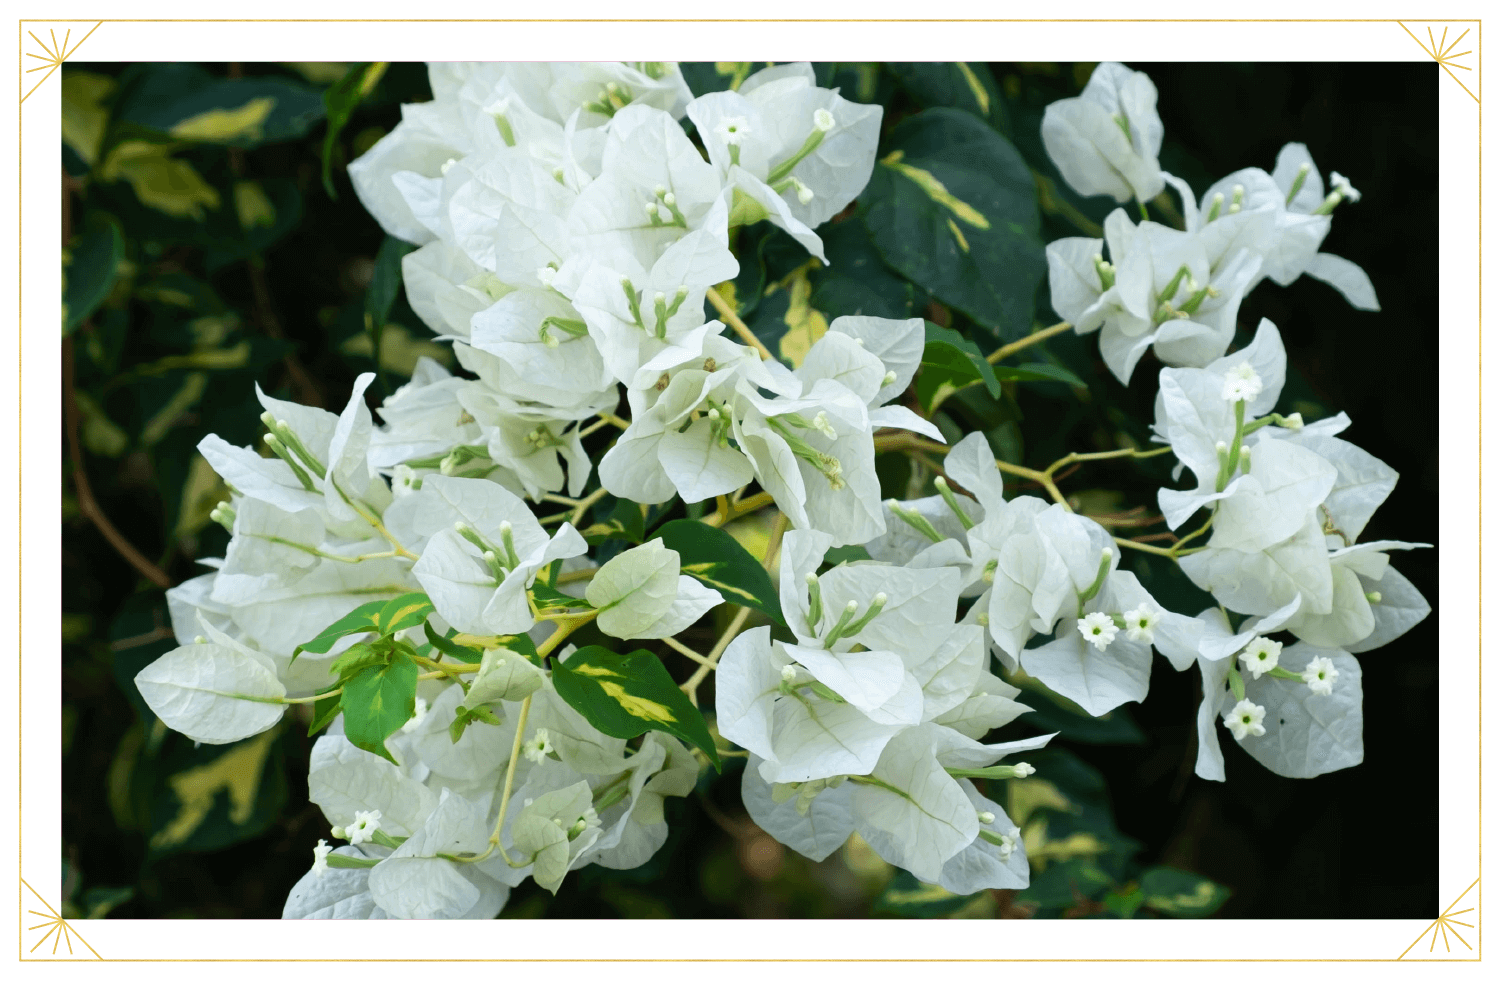 Bougainvillea Care Guide How To Care For Bougainvilleas In Pots Growing Tips Proflowers